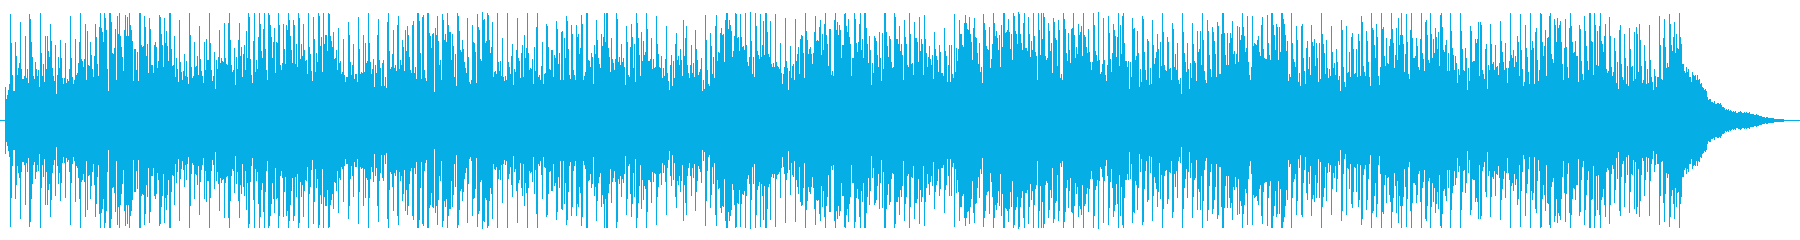 Whistling and guitar fun pops's reproduced waveform